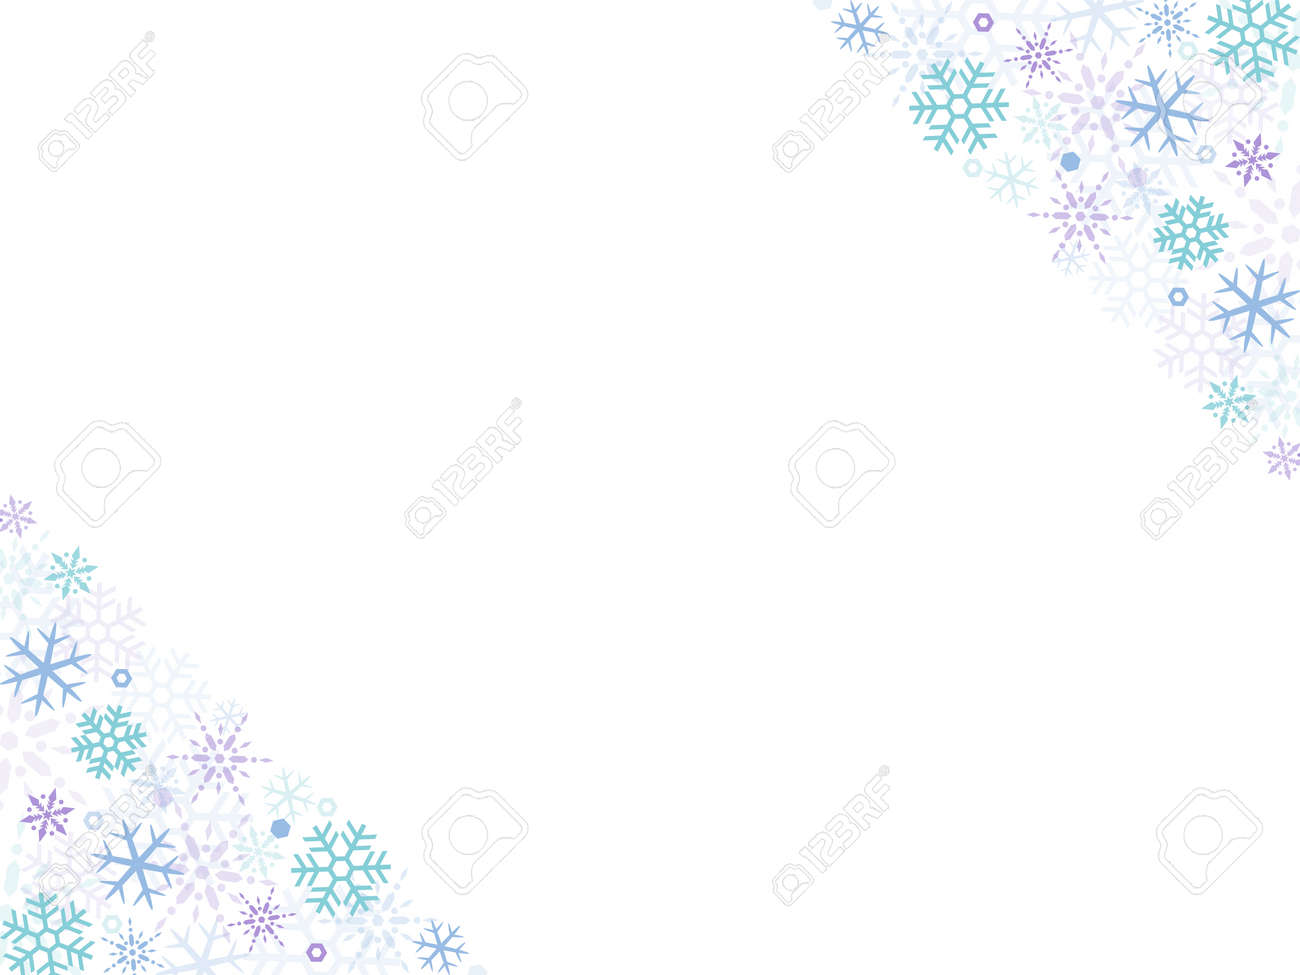 Abstract winter background with falling snowflakes - 156828860